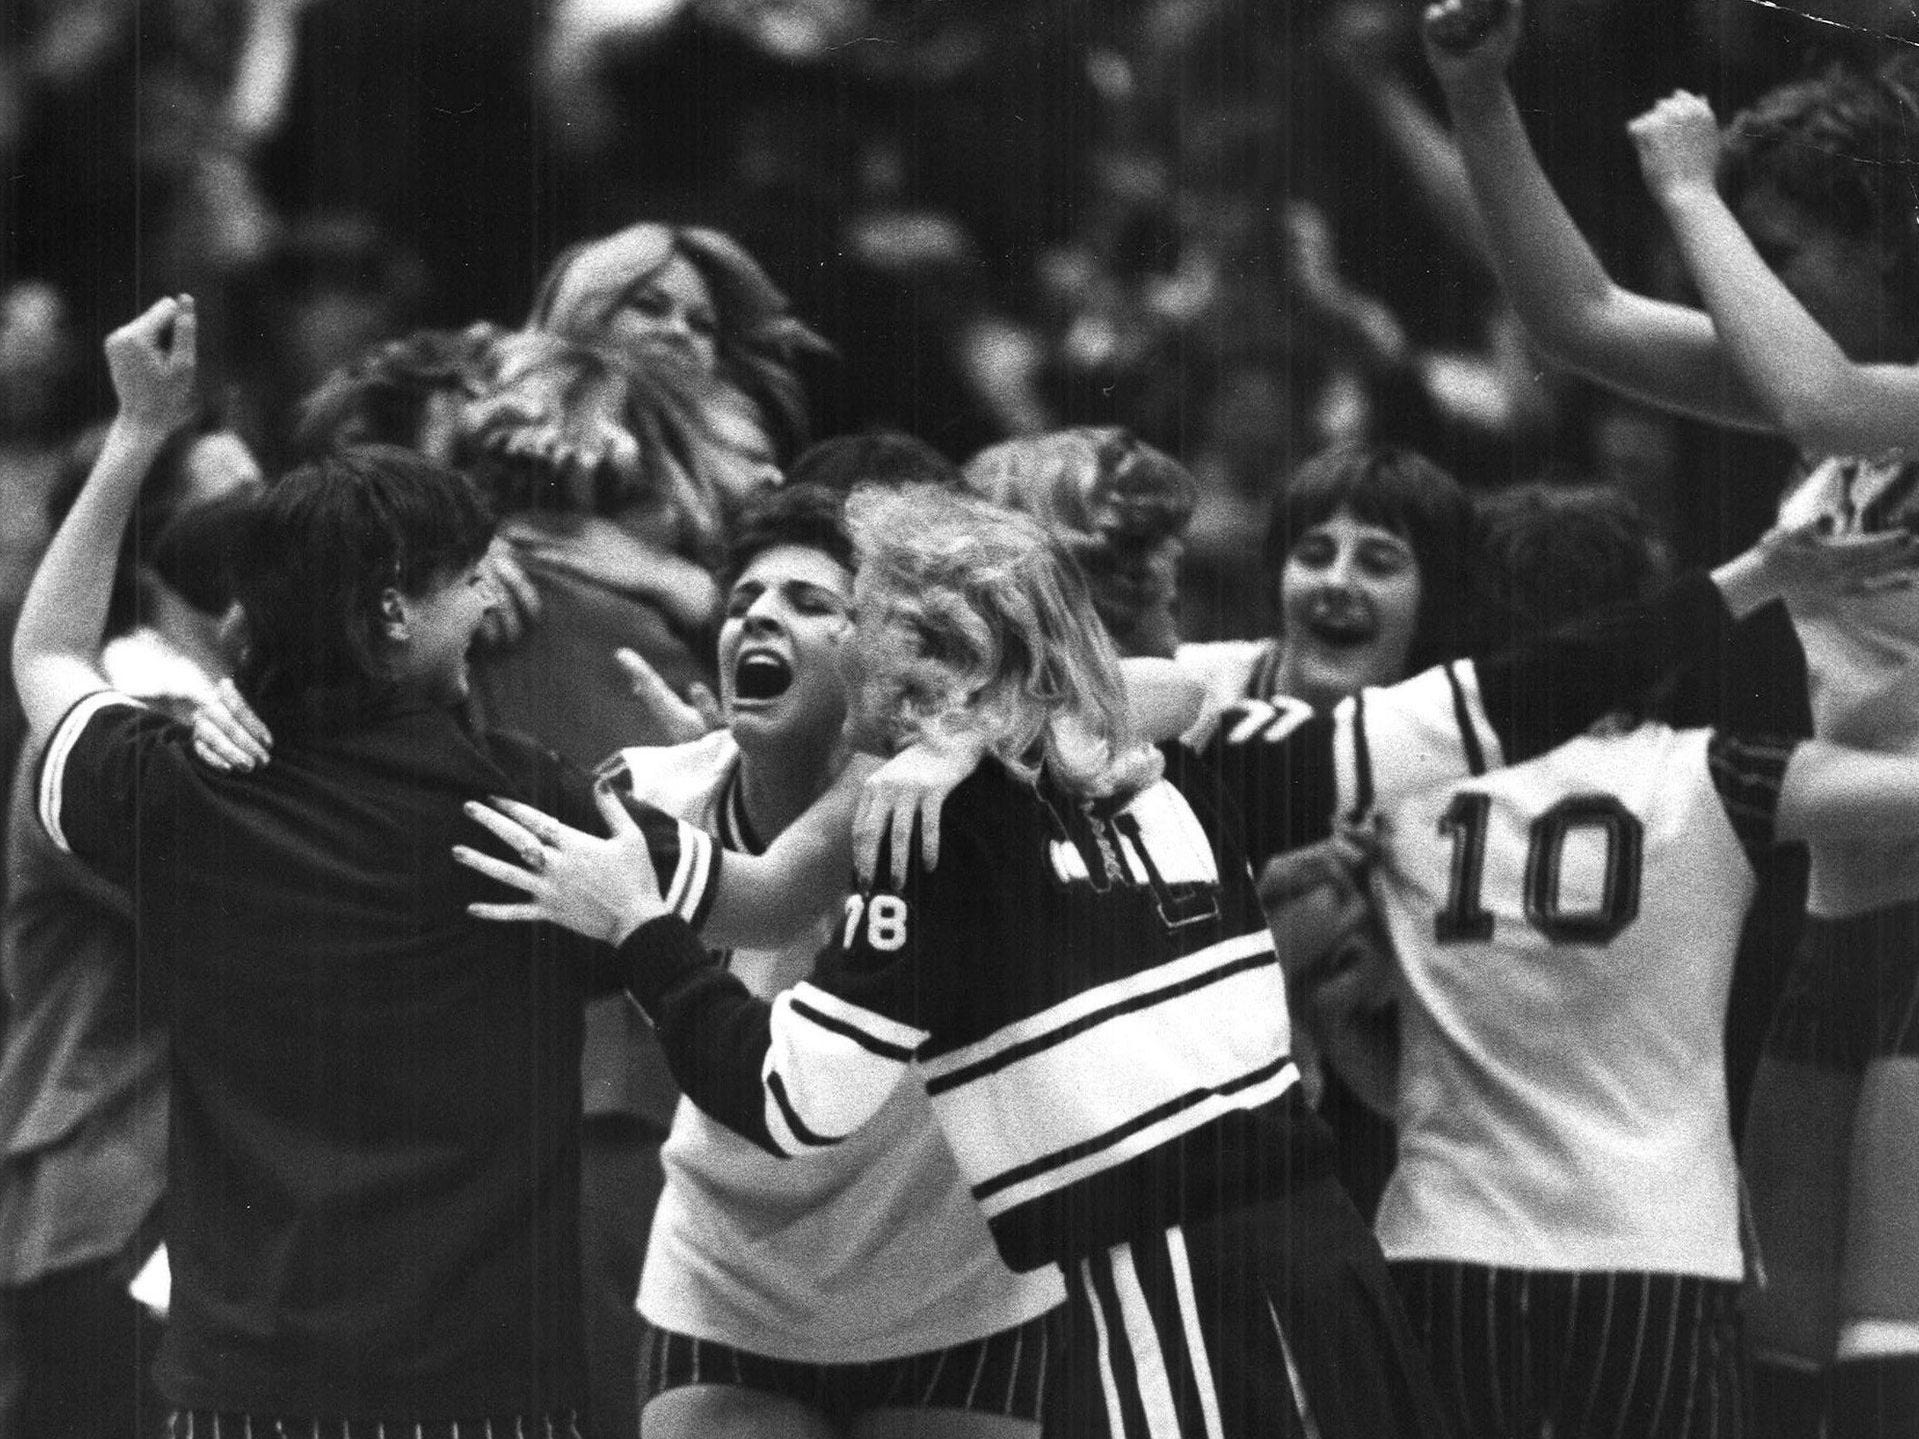 1978: West Lyon players are jubilant after a win over Belmond. Register file photo